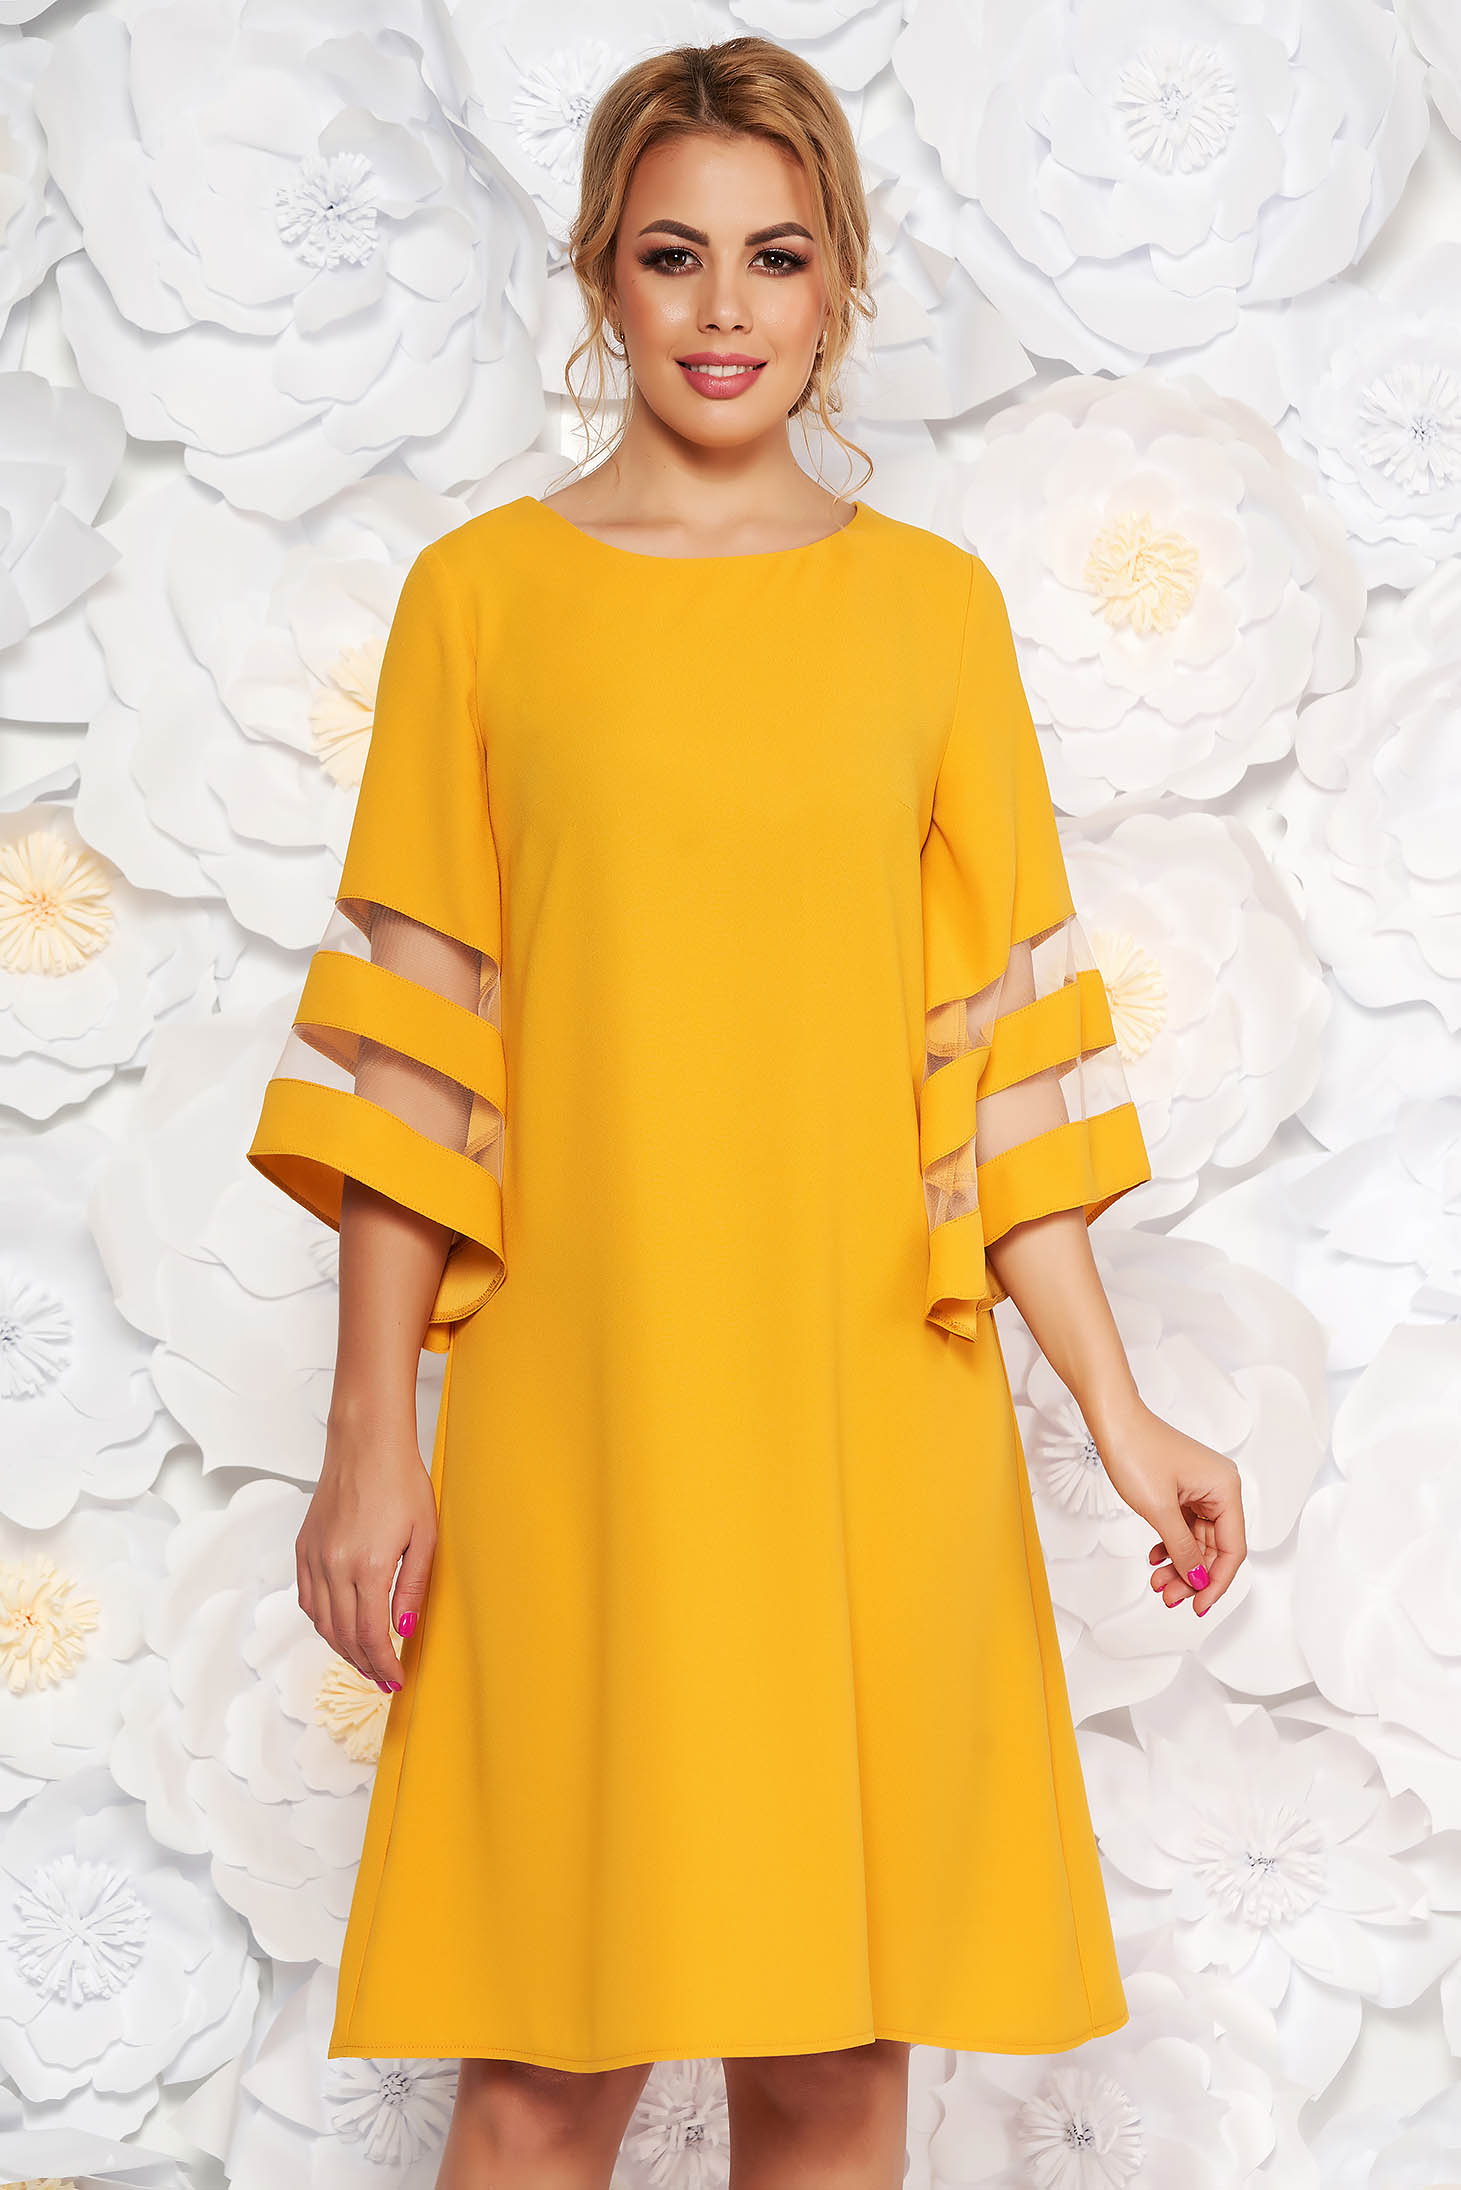 Yellow dress elegant flared from non elastic fabric large sleeves